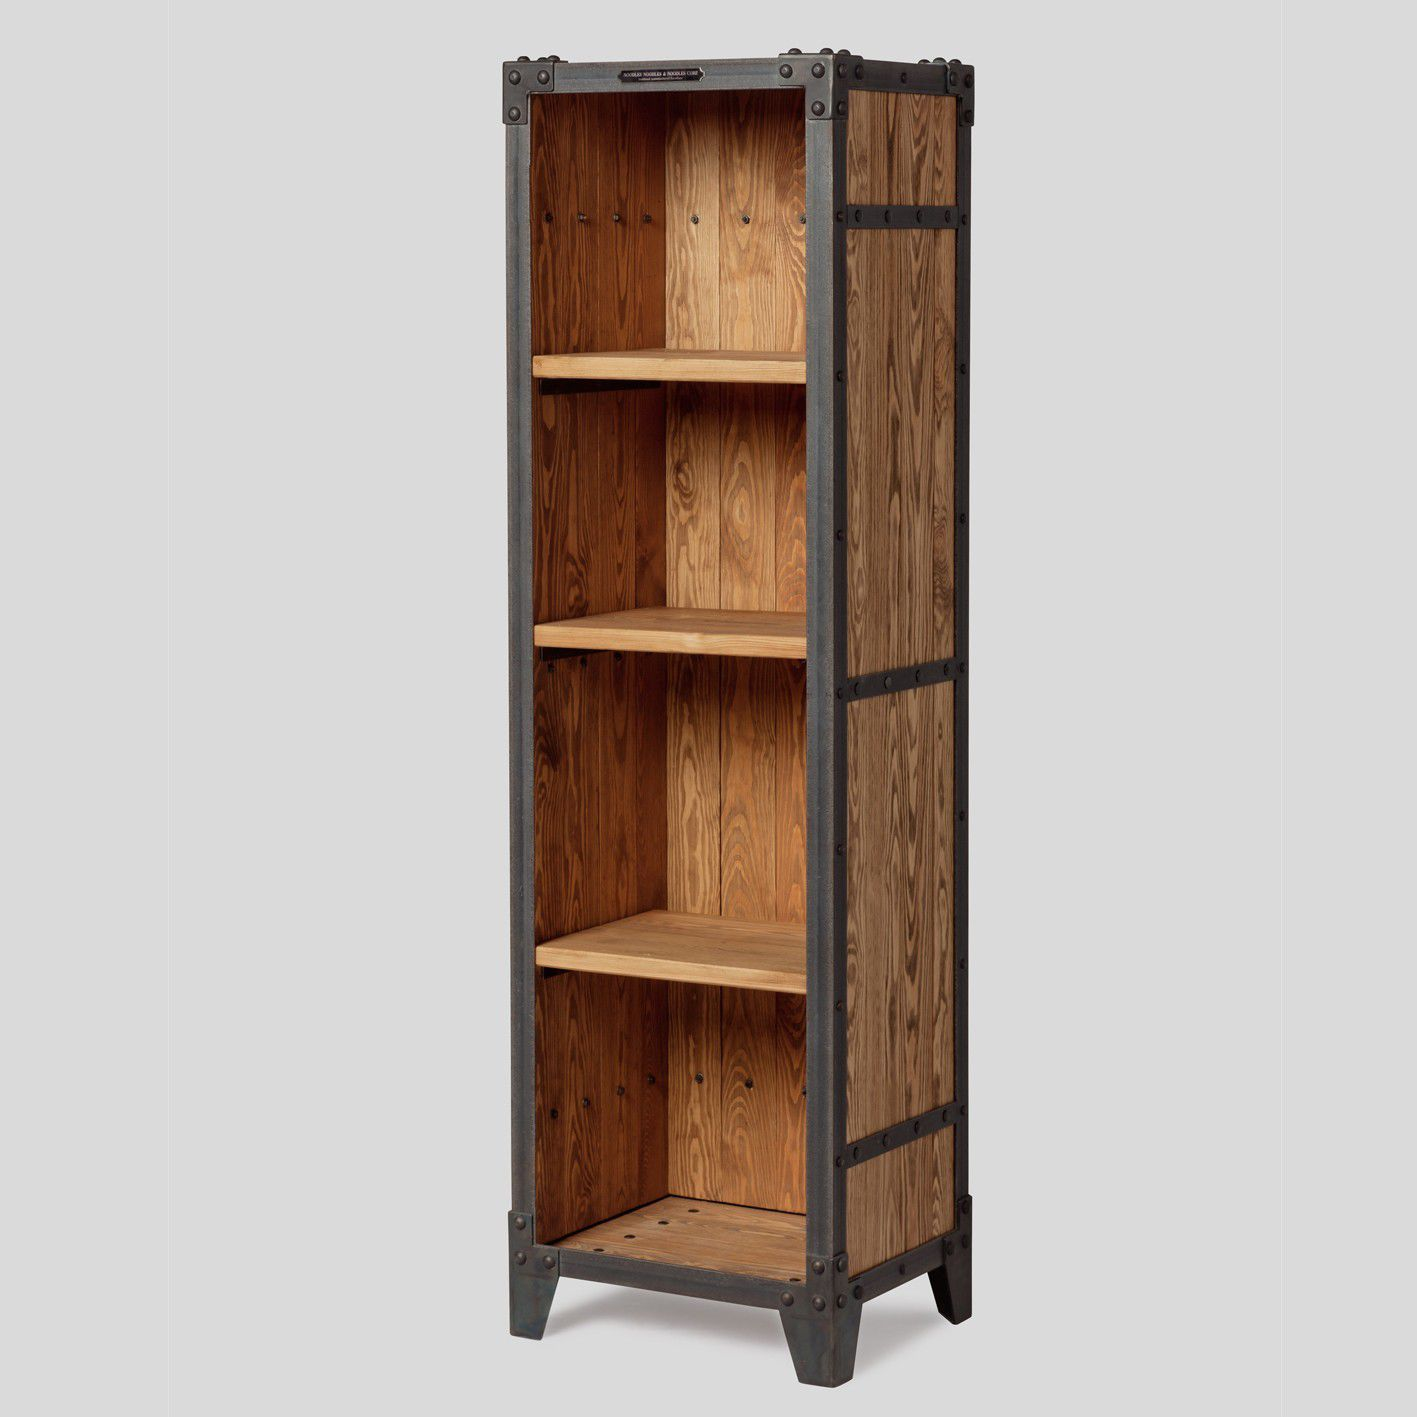 Contemporary Shelf Contemporary Shelf Wooden Steel Commercial Px 1 Noodles